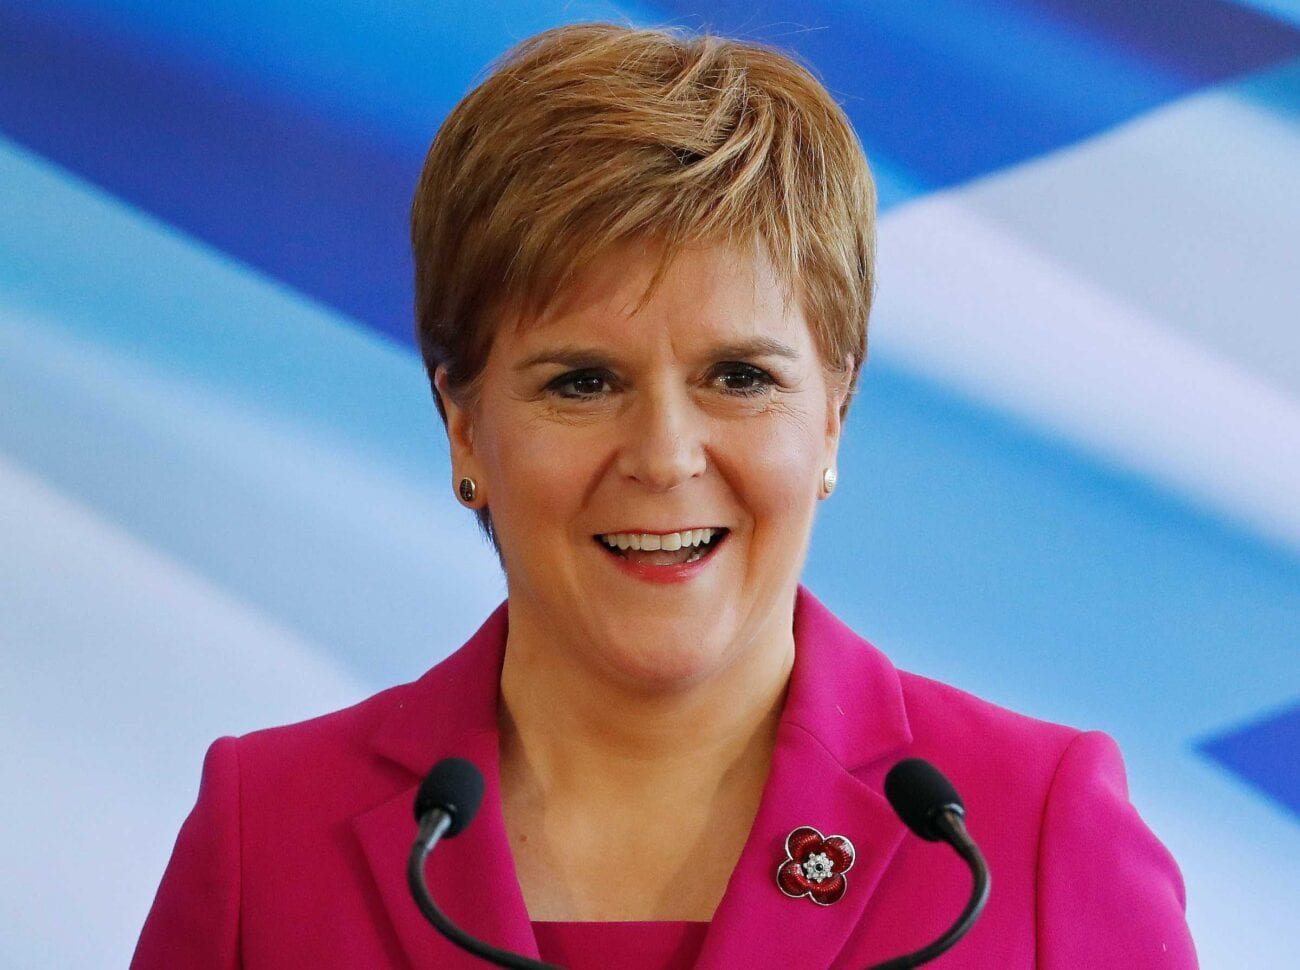 Scotland's First Minister Nicola Sturgeon is about to put forward a two–week shutdown in the wake of a second wave of coronavirus. Here's what we know.